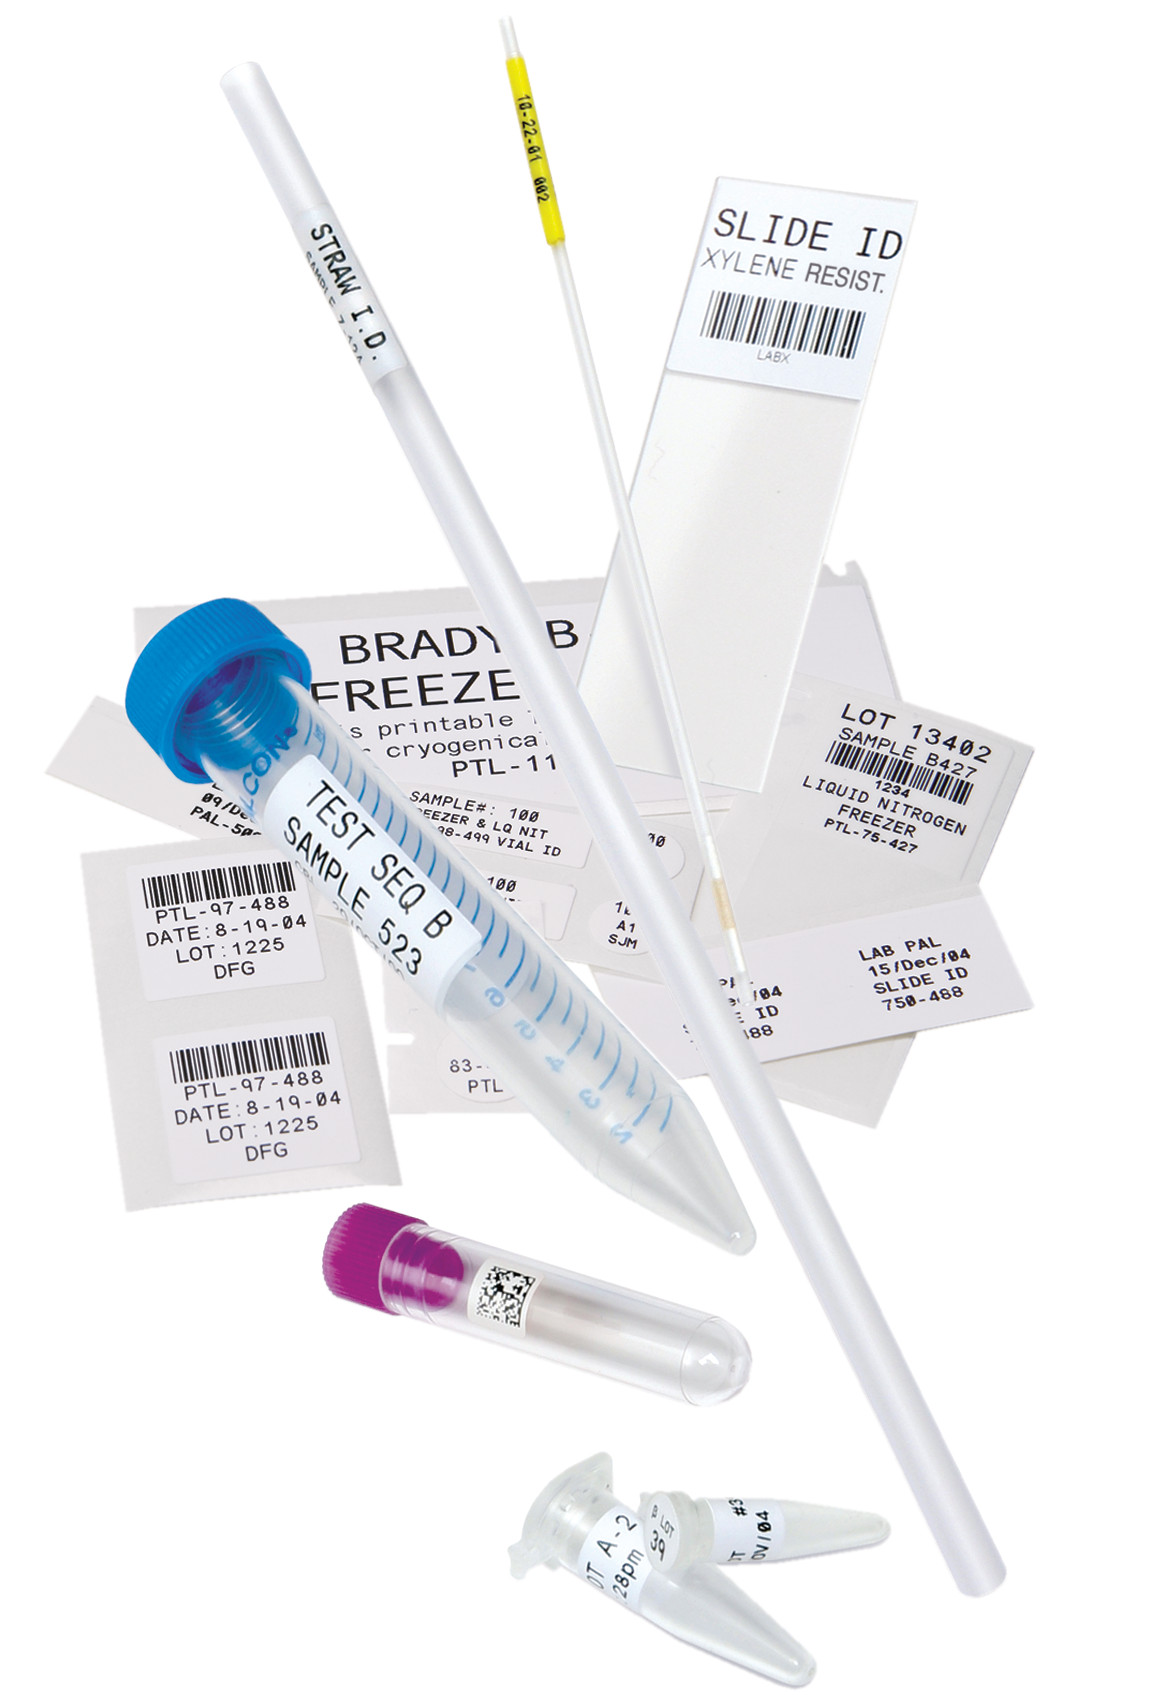 Lab vials and labels